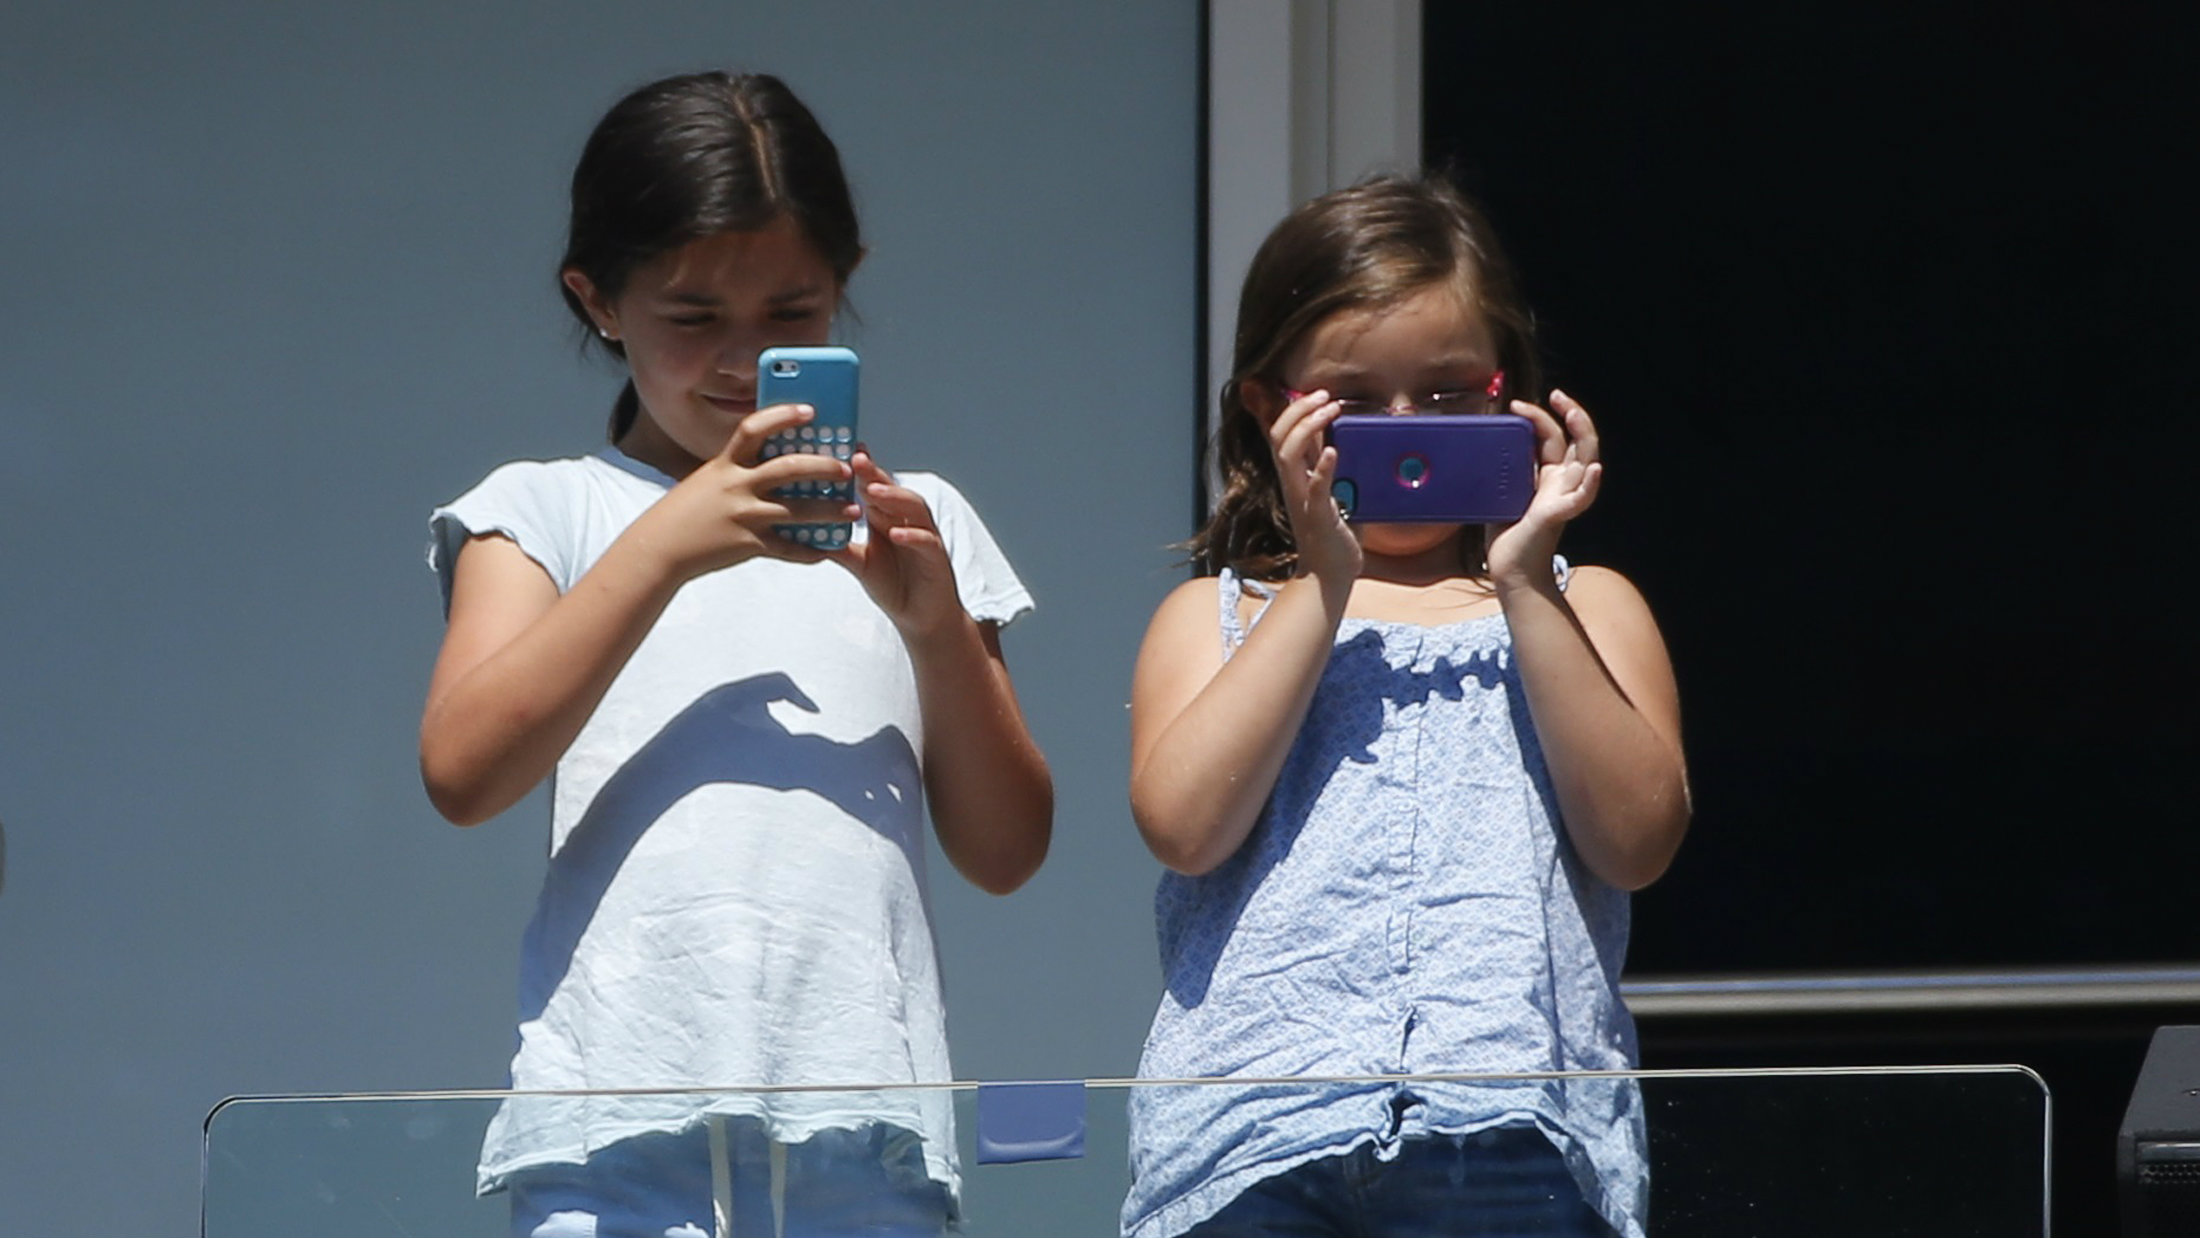 oung girls take pictures with the cell phones during the match between Victoria Azarenka of Belarus